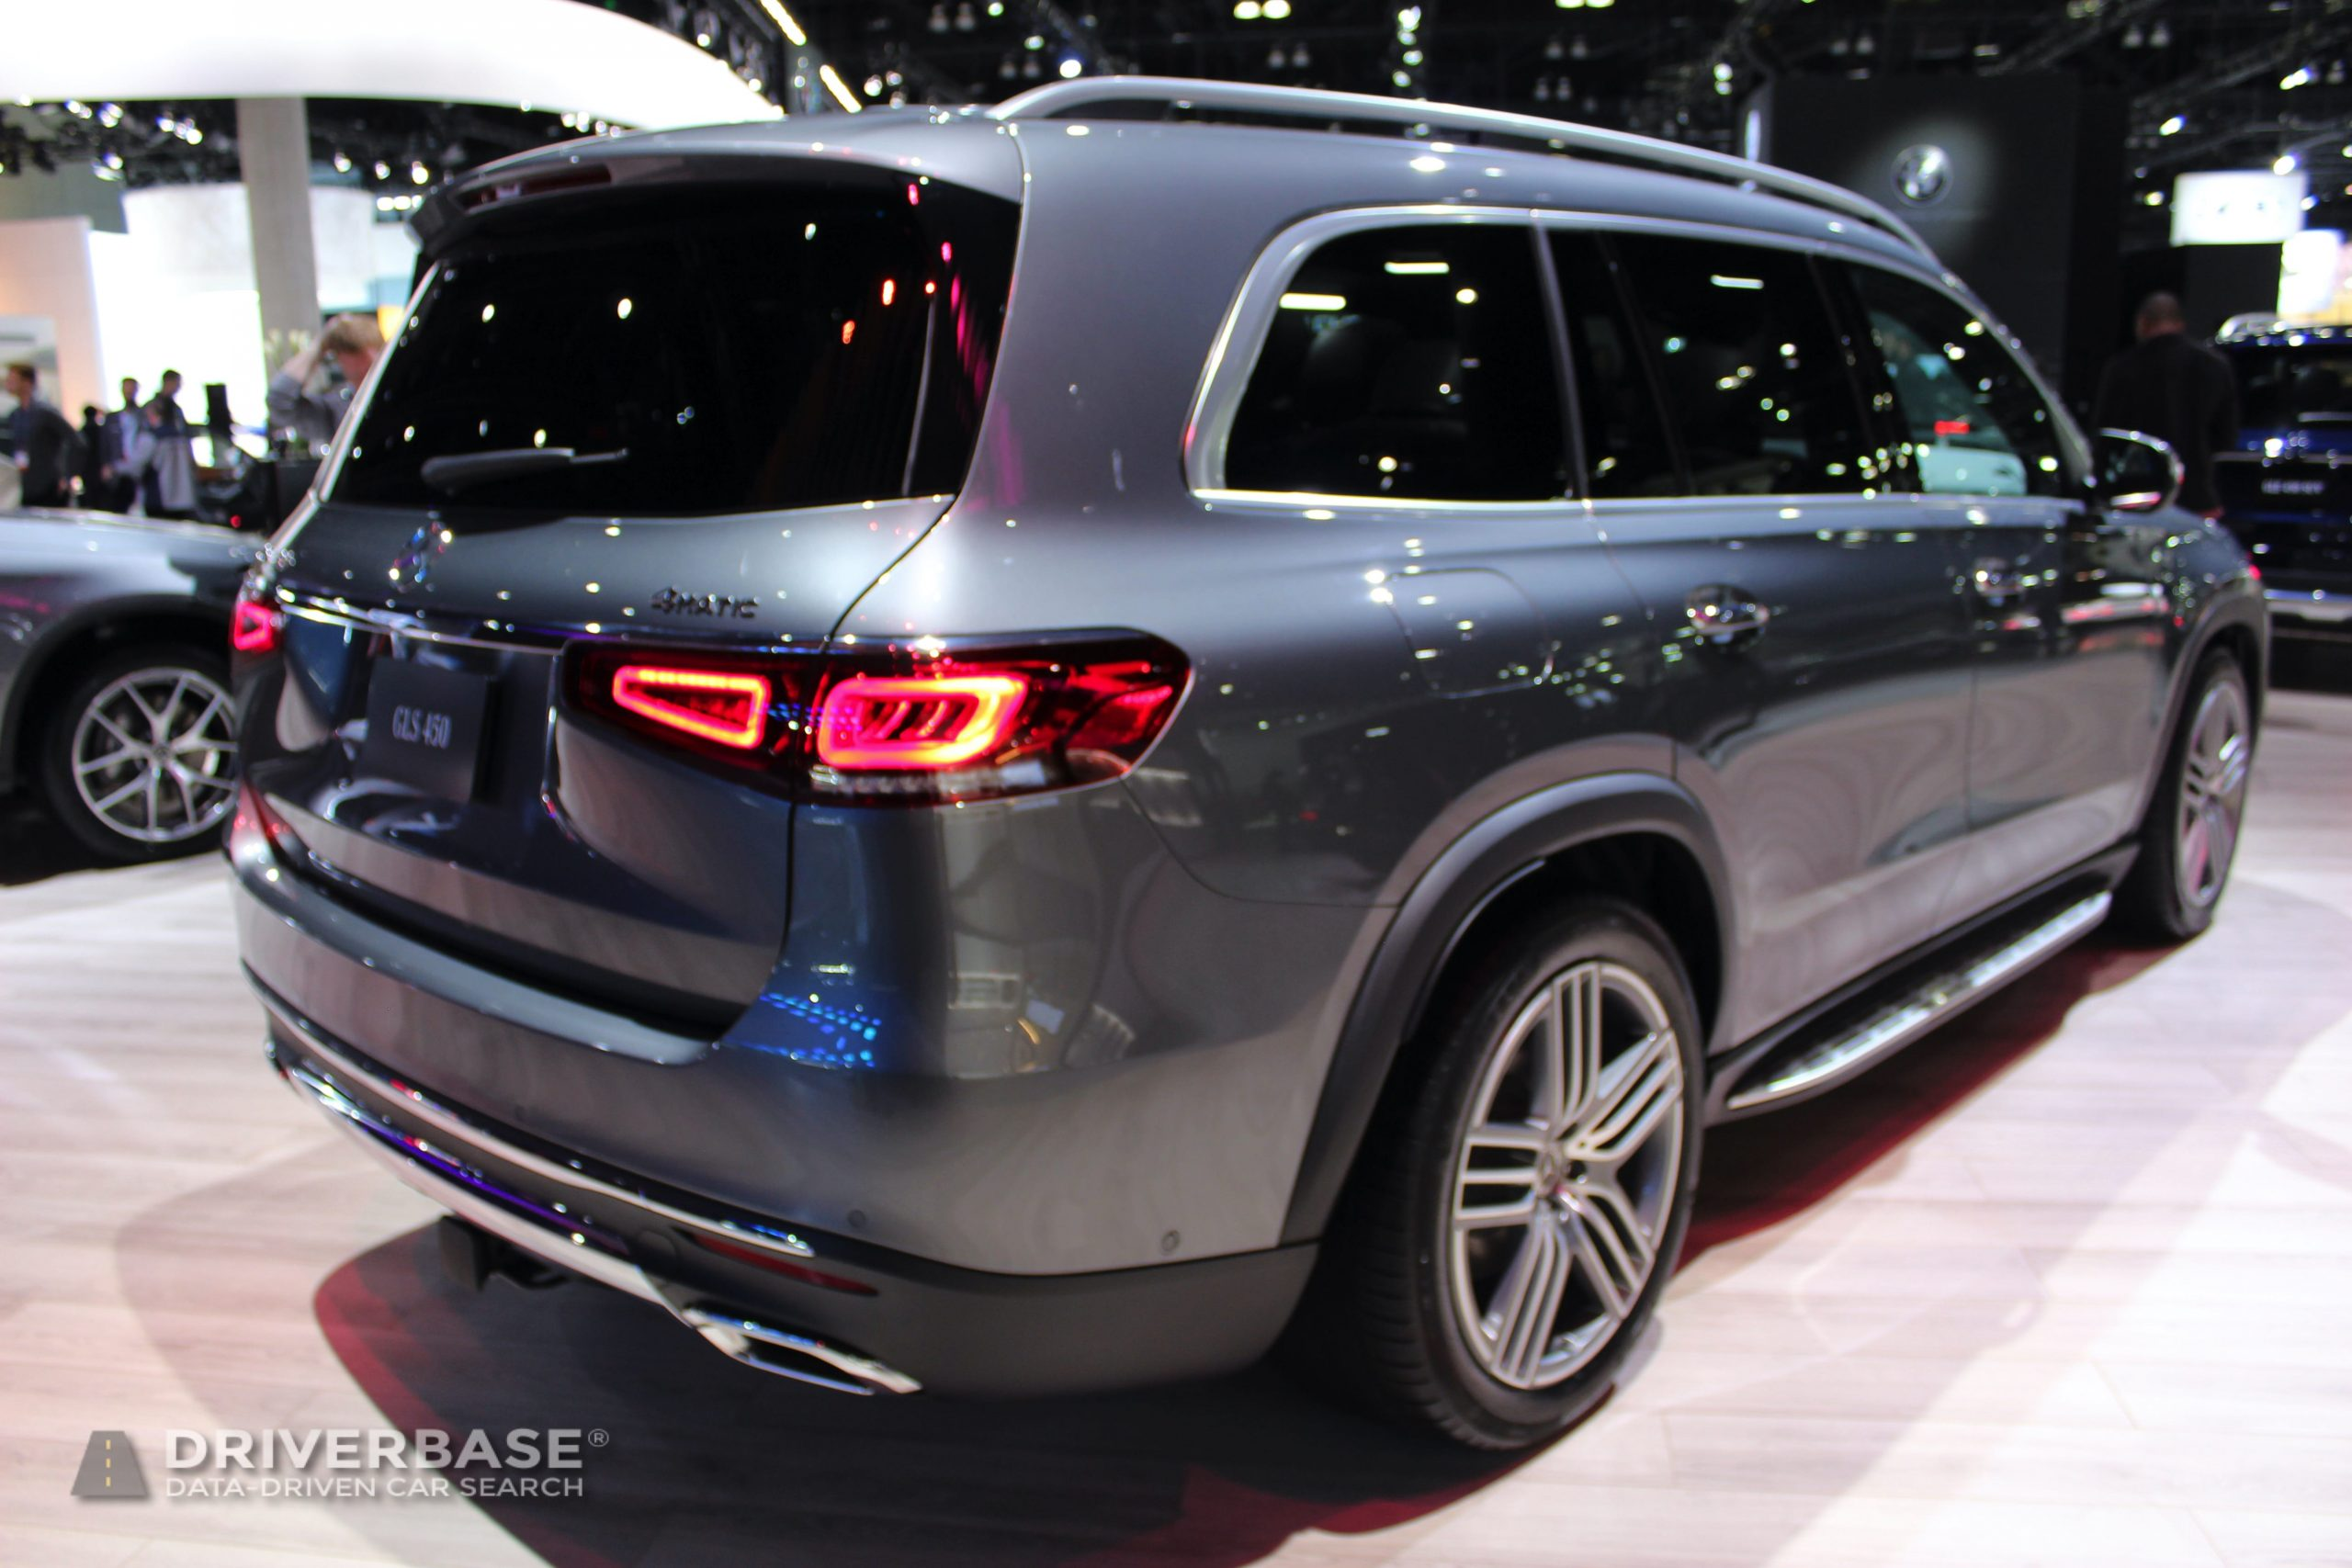 2020 Mercedes-Benz GLS 450 at the 2019 Los Angeles Auto Show